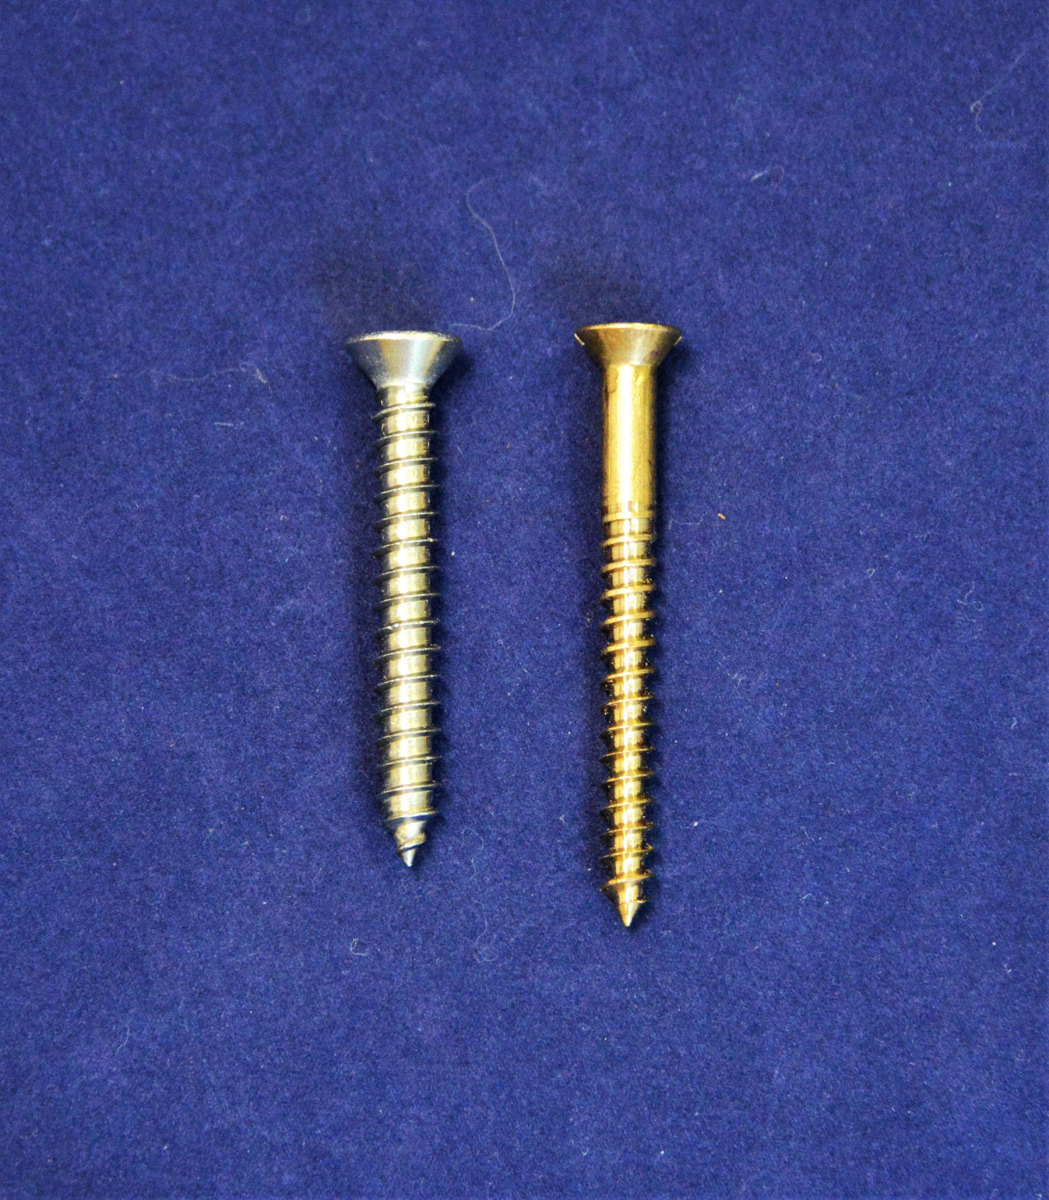 The self-tapping screw on the left has a uniform shank width and can use a standard drill bit for the pilot hole. The wood screw on the right is tapered and requires a tapered drill bit.